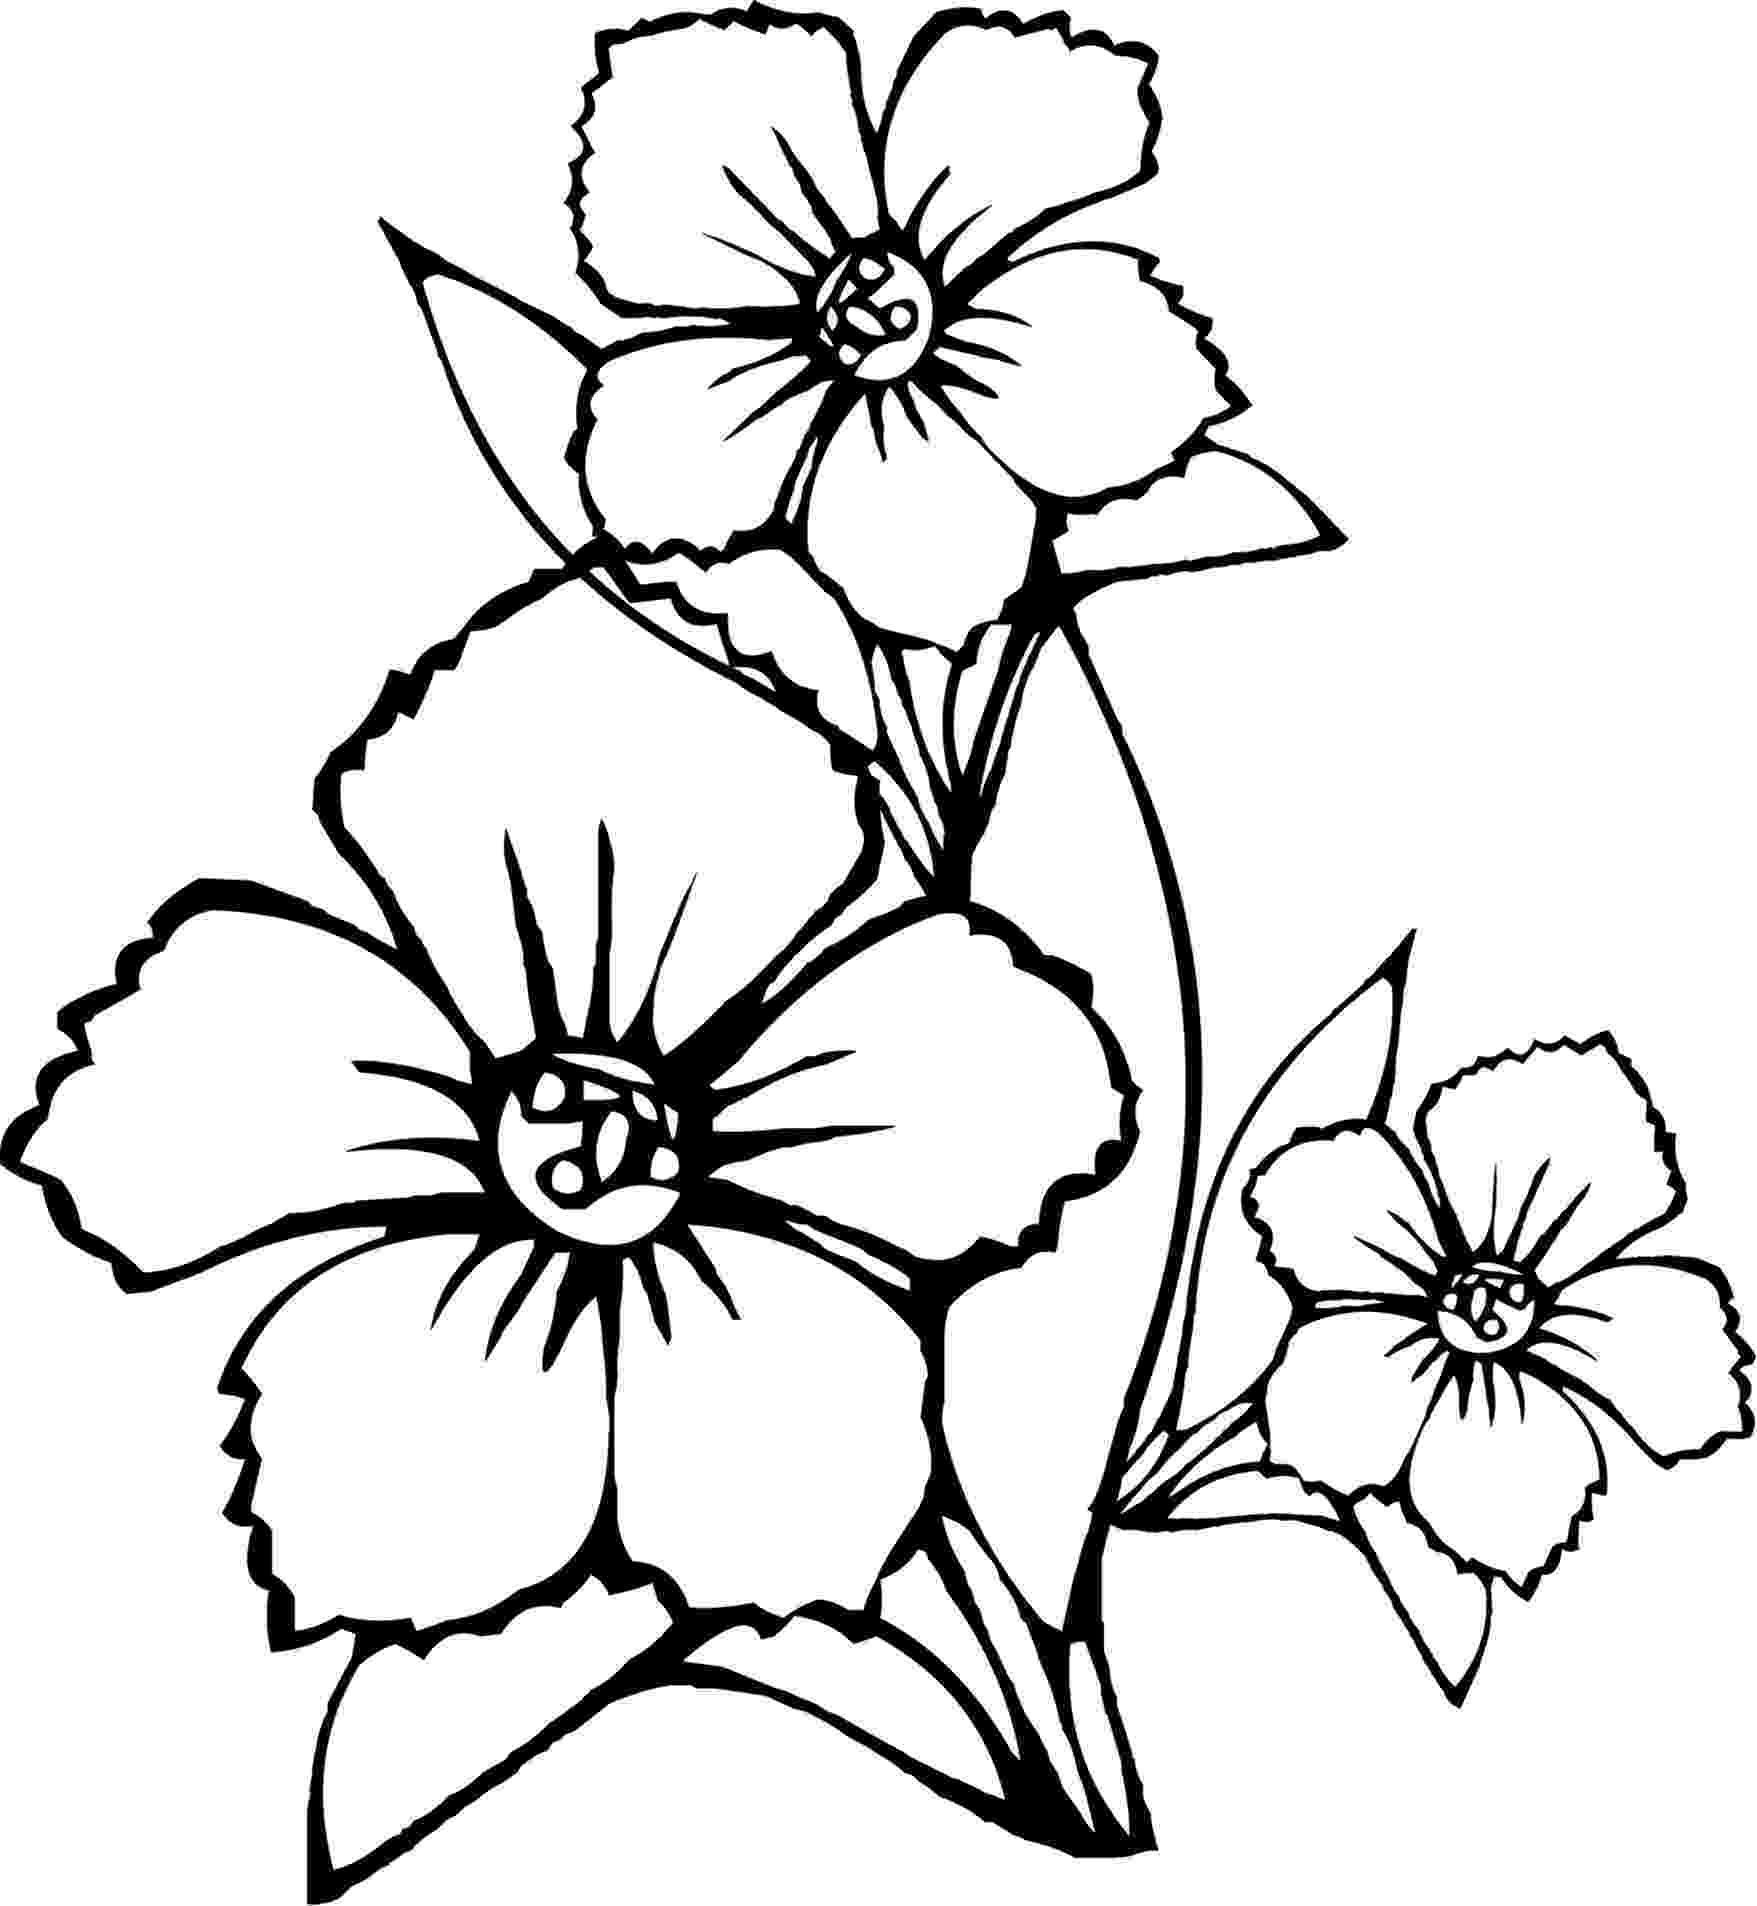 pictures of flowers to color free printables flower pictures to print and color printables color of pictures flowers to free